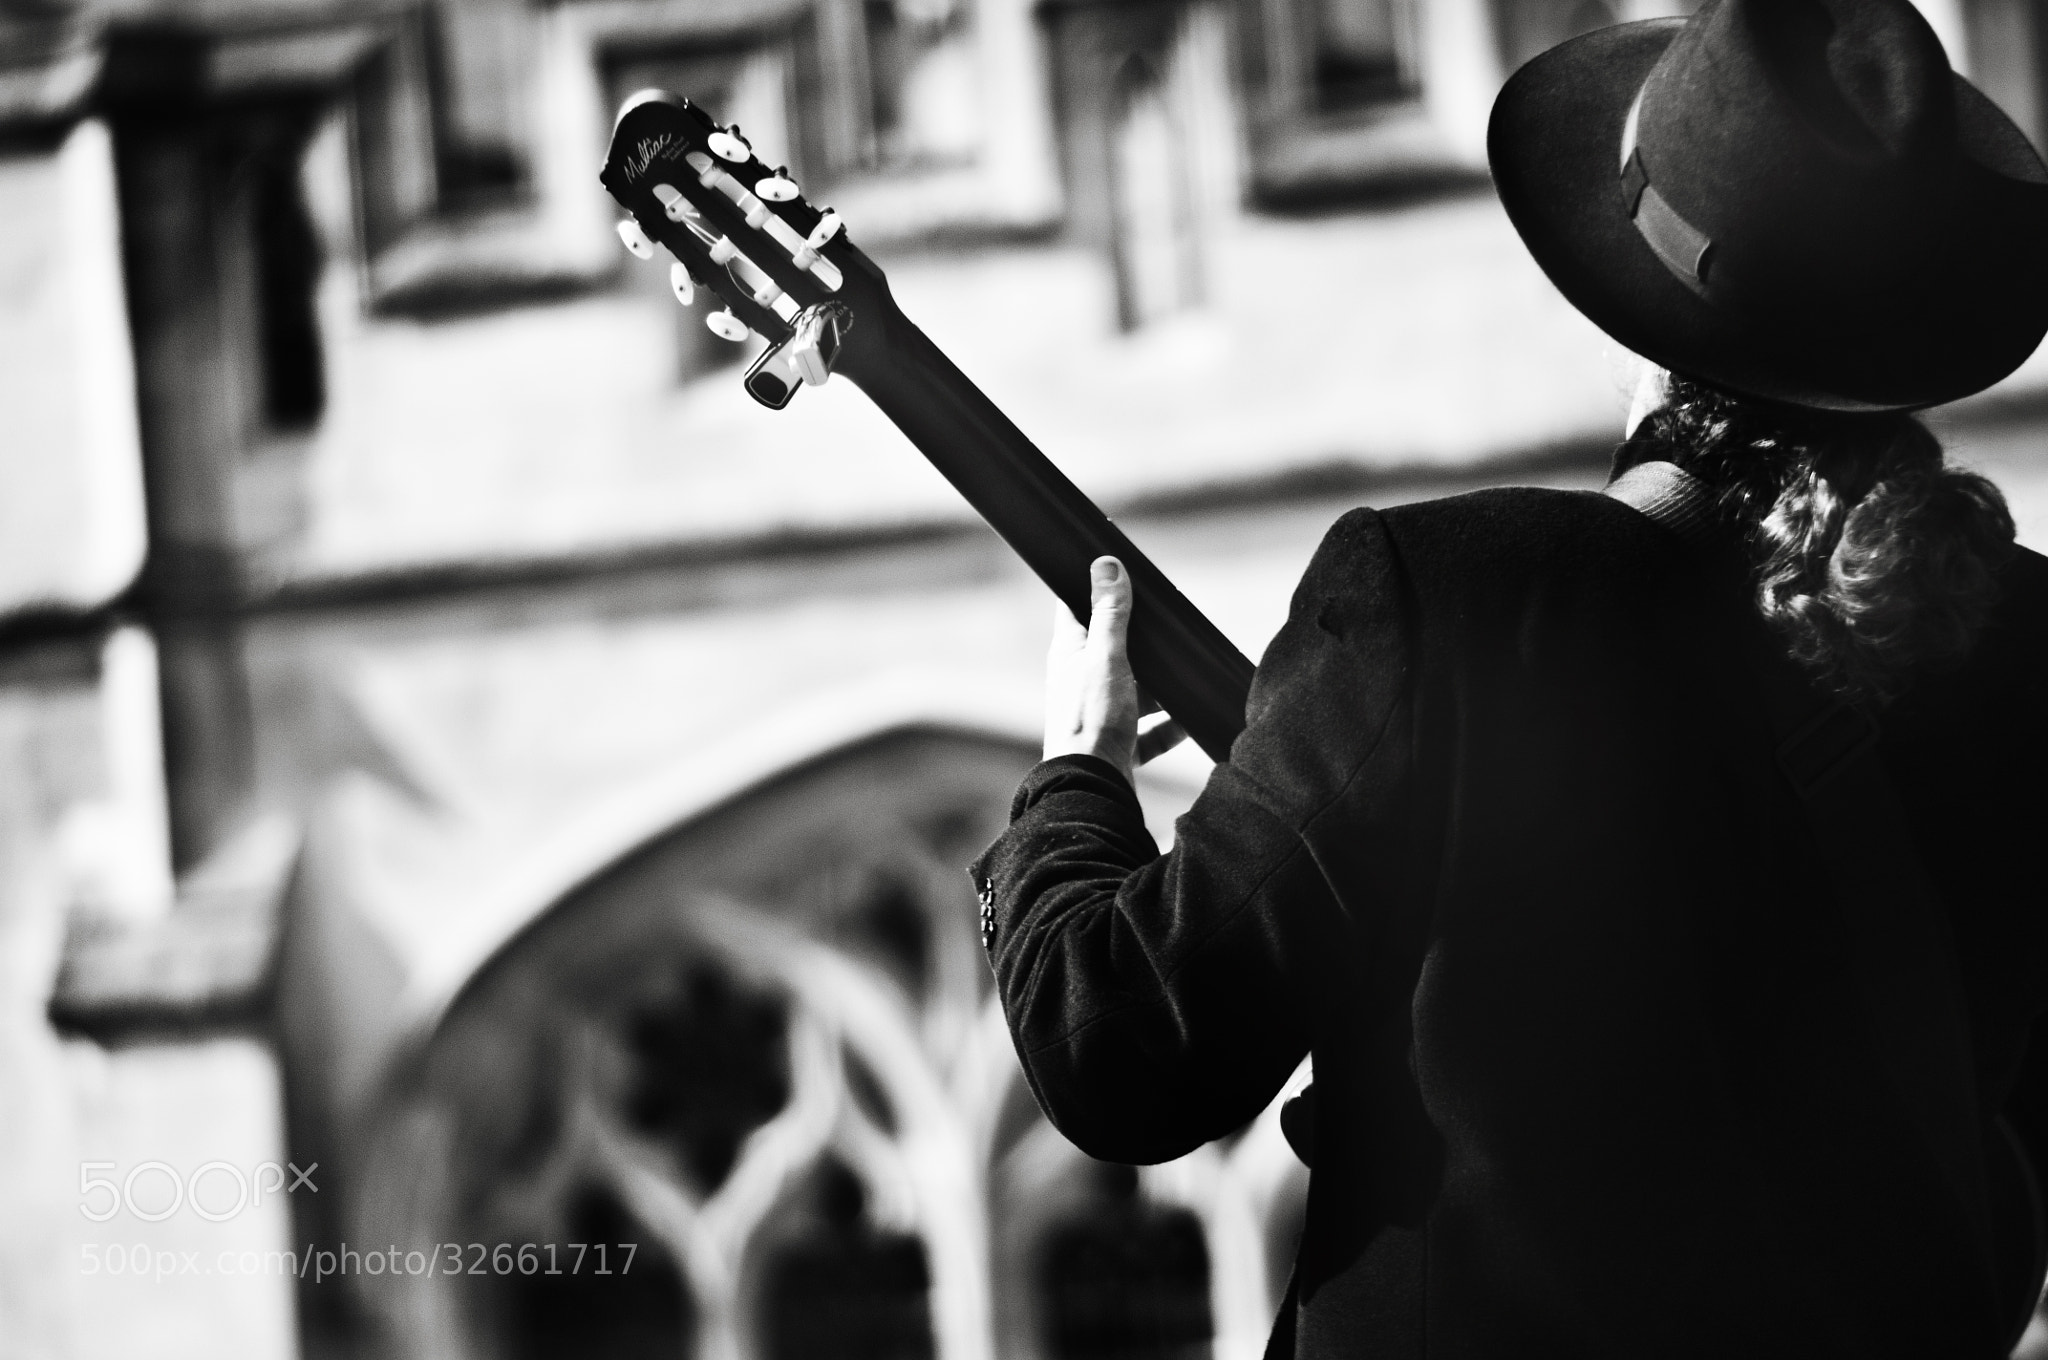 Photograph High Street Entertainment by Matt Bell on 500px